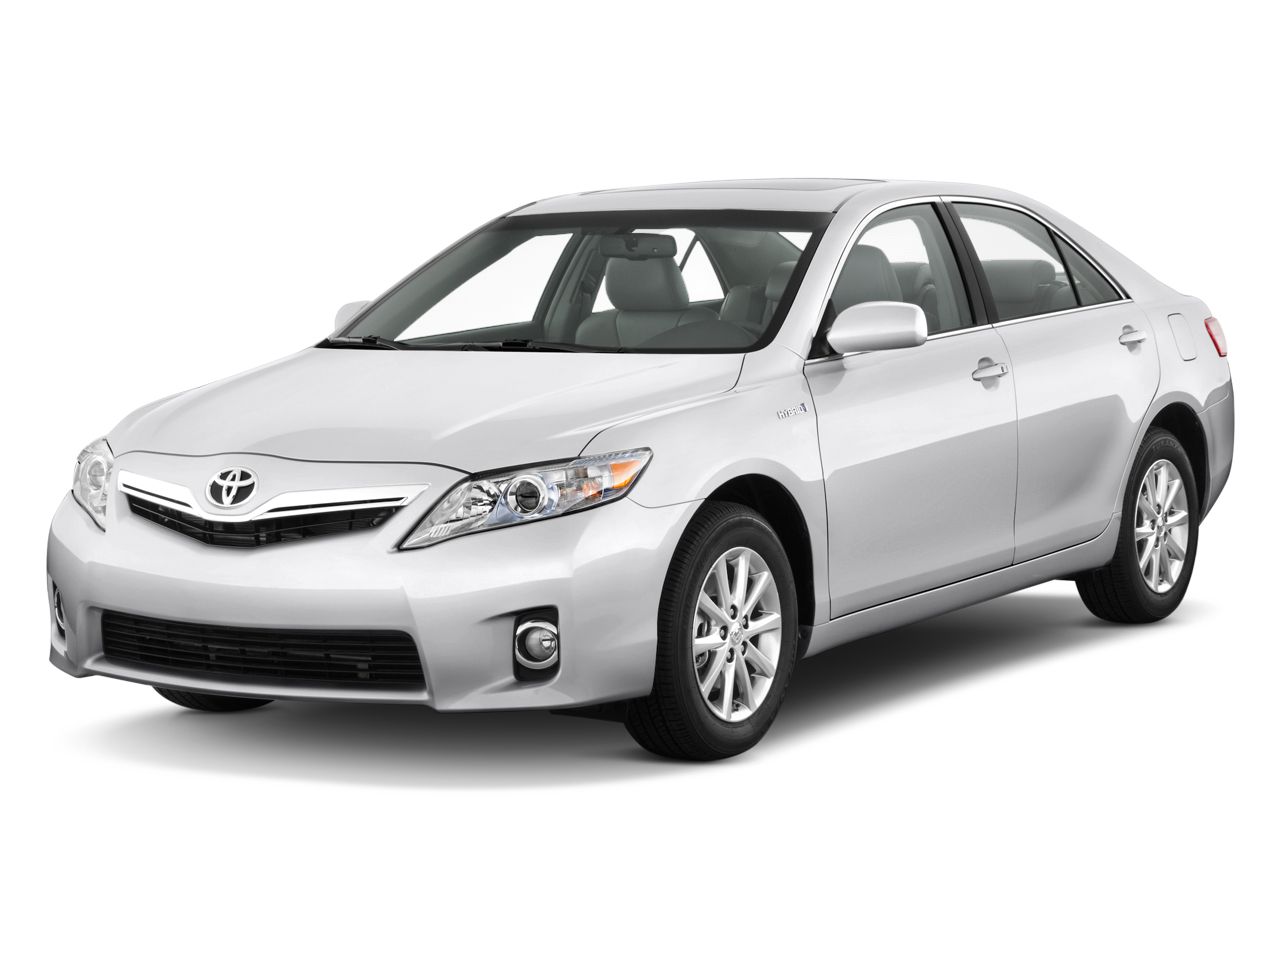 2011 toyota camry hybrid review ratings specs prices and photos the car connection. Black Bedroom Furniture Sets. Home Design Ideas